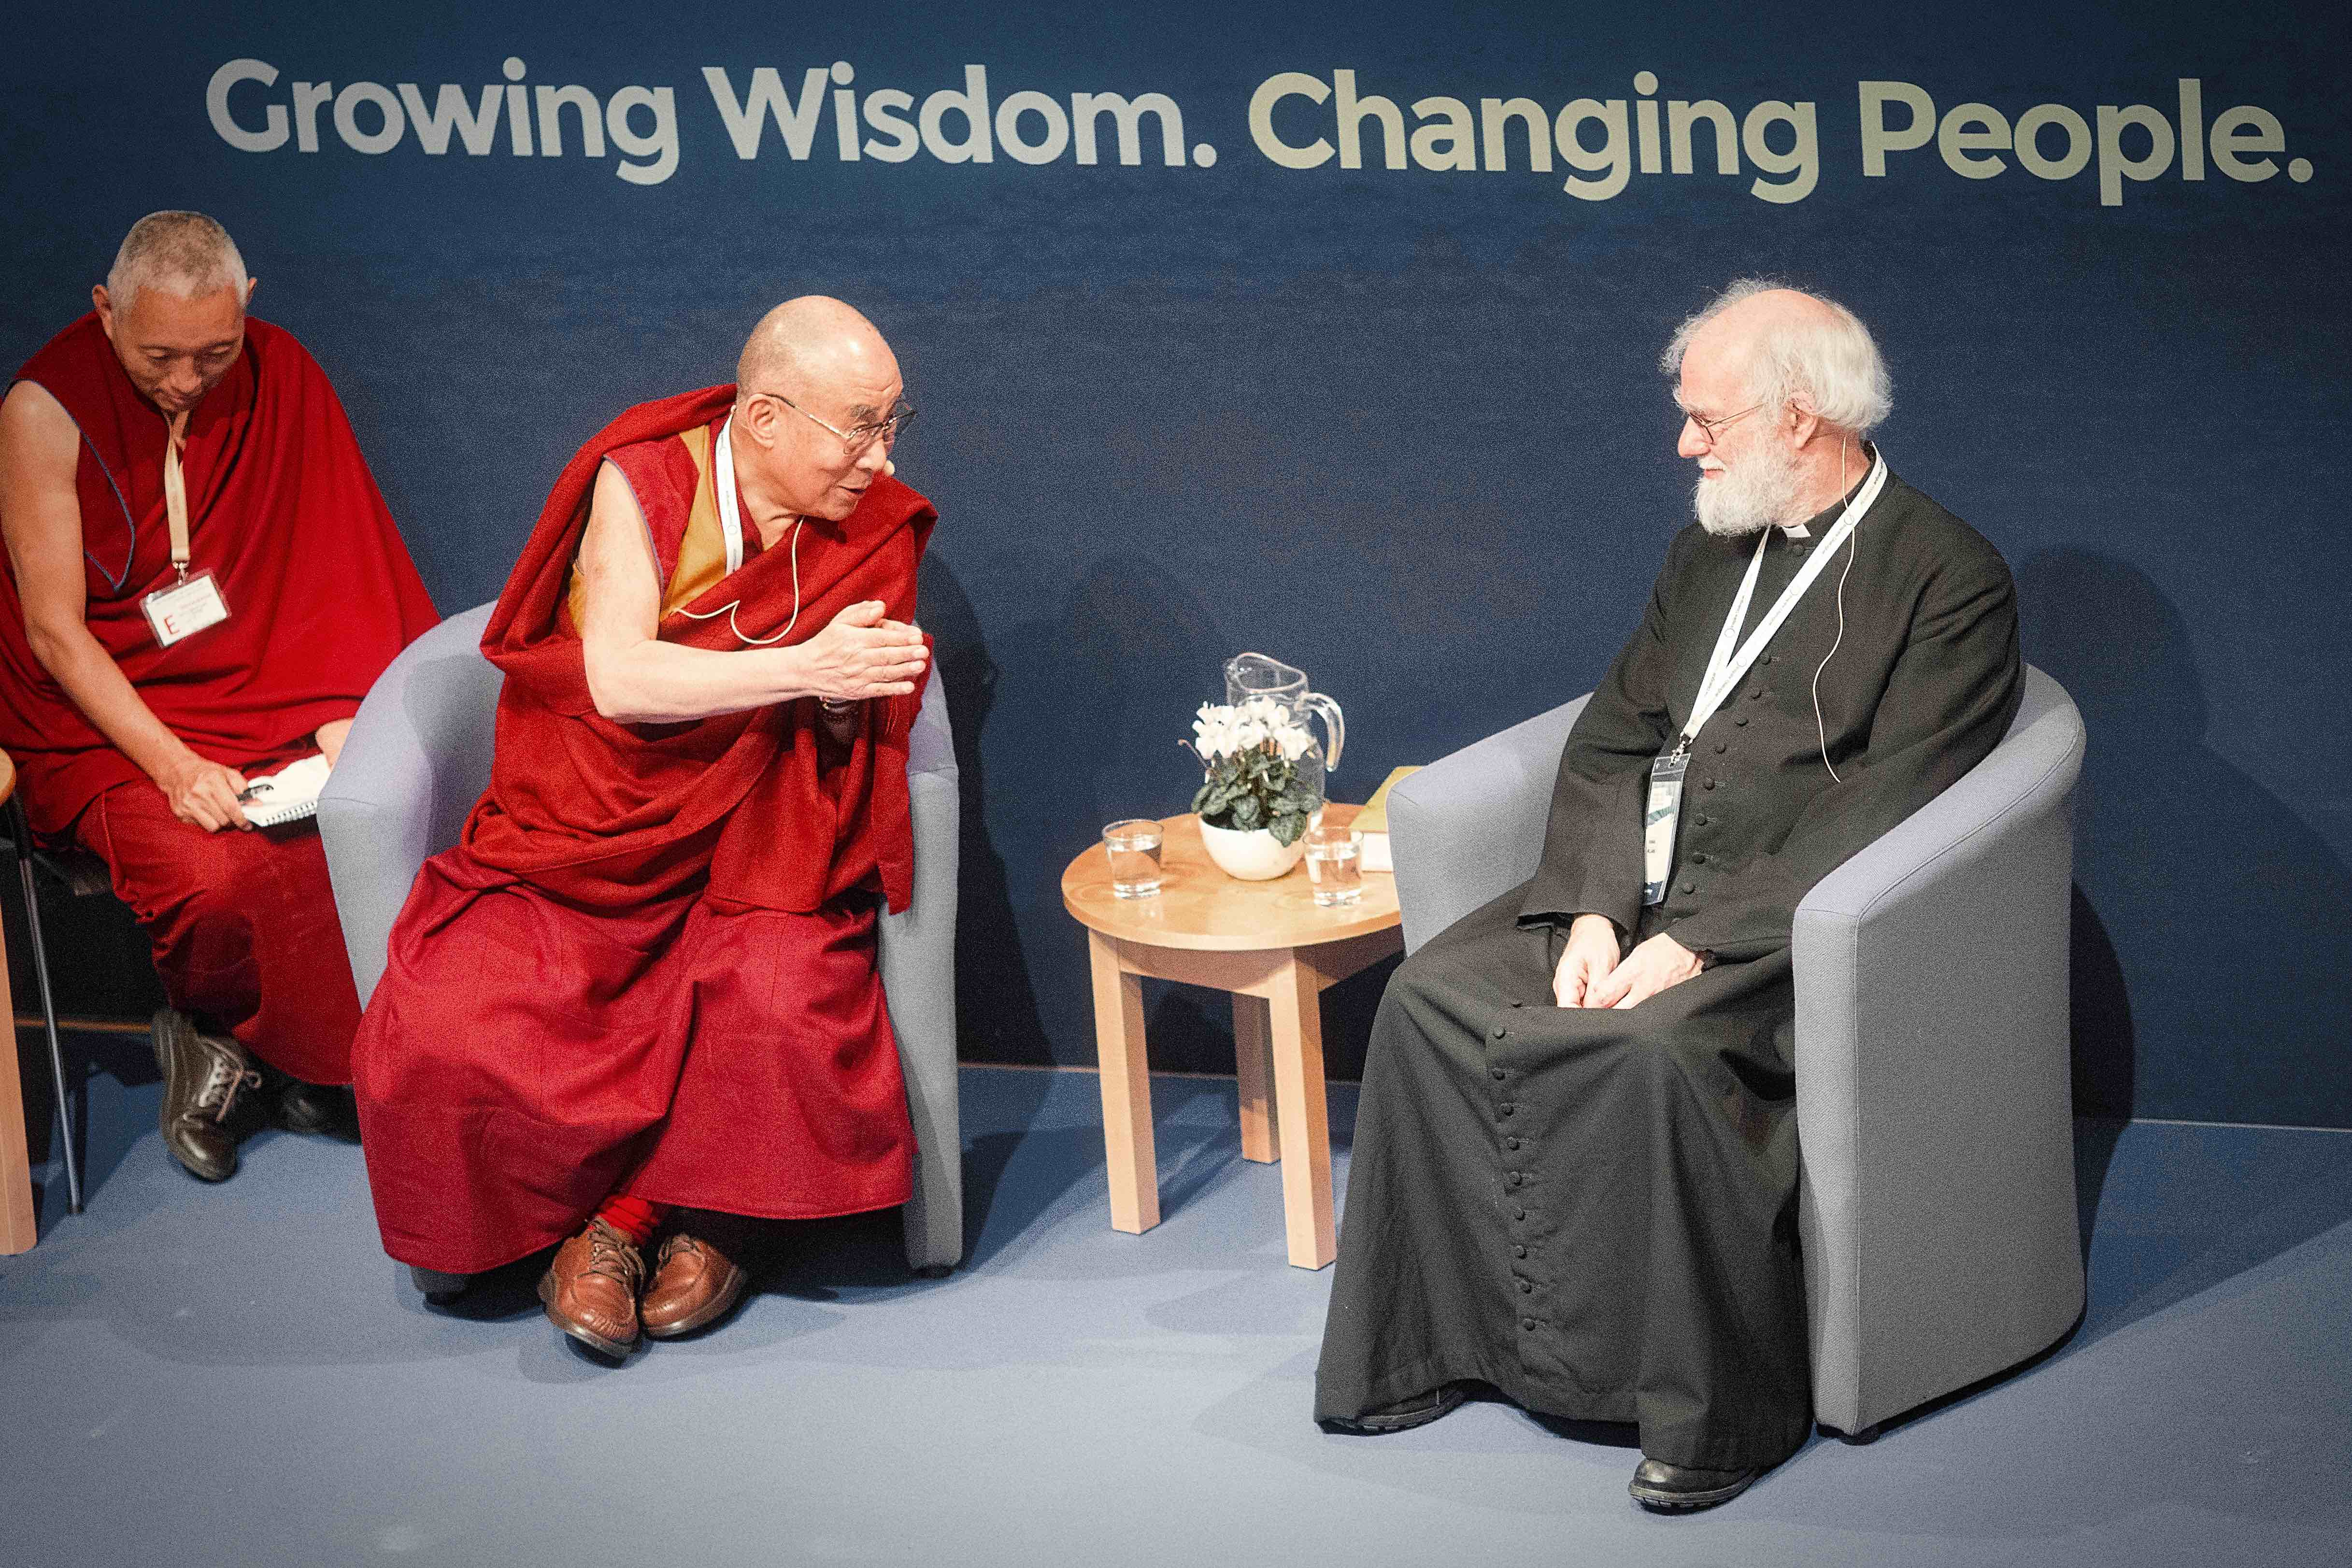 His Holiness The Dalai Lama with Lord Rowan Williams at Inspire Dialogue 2015